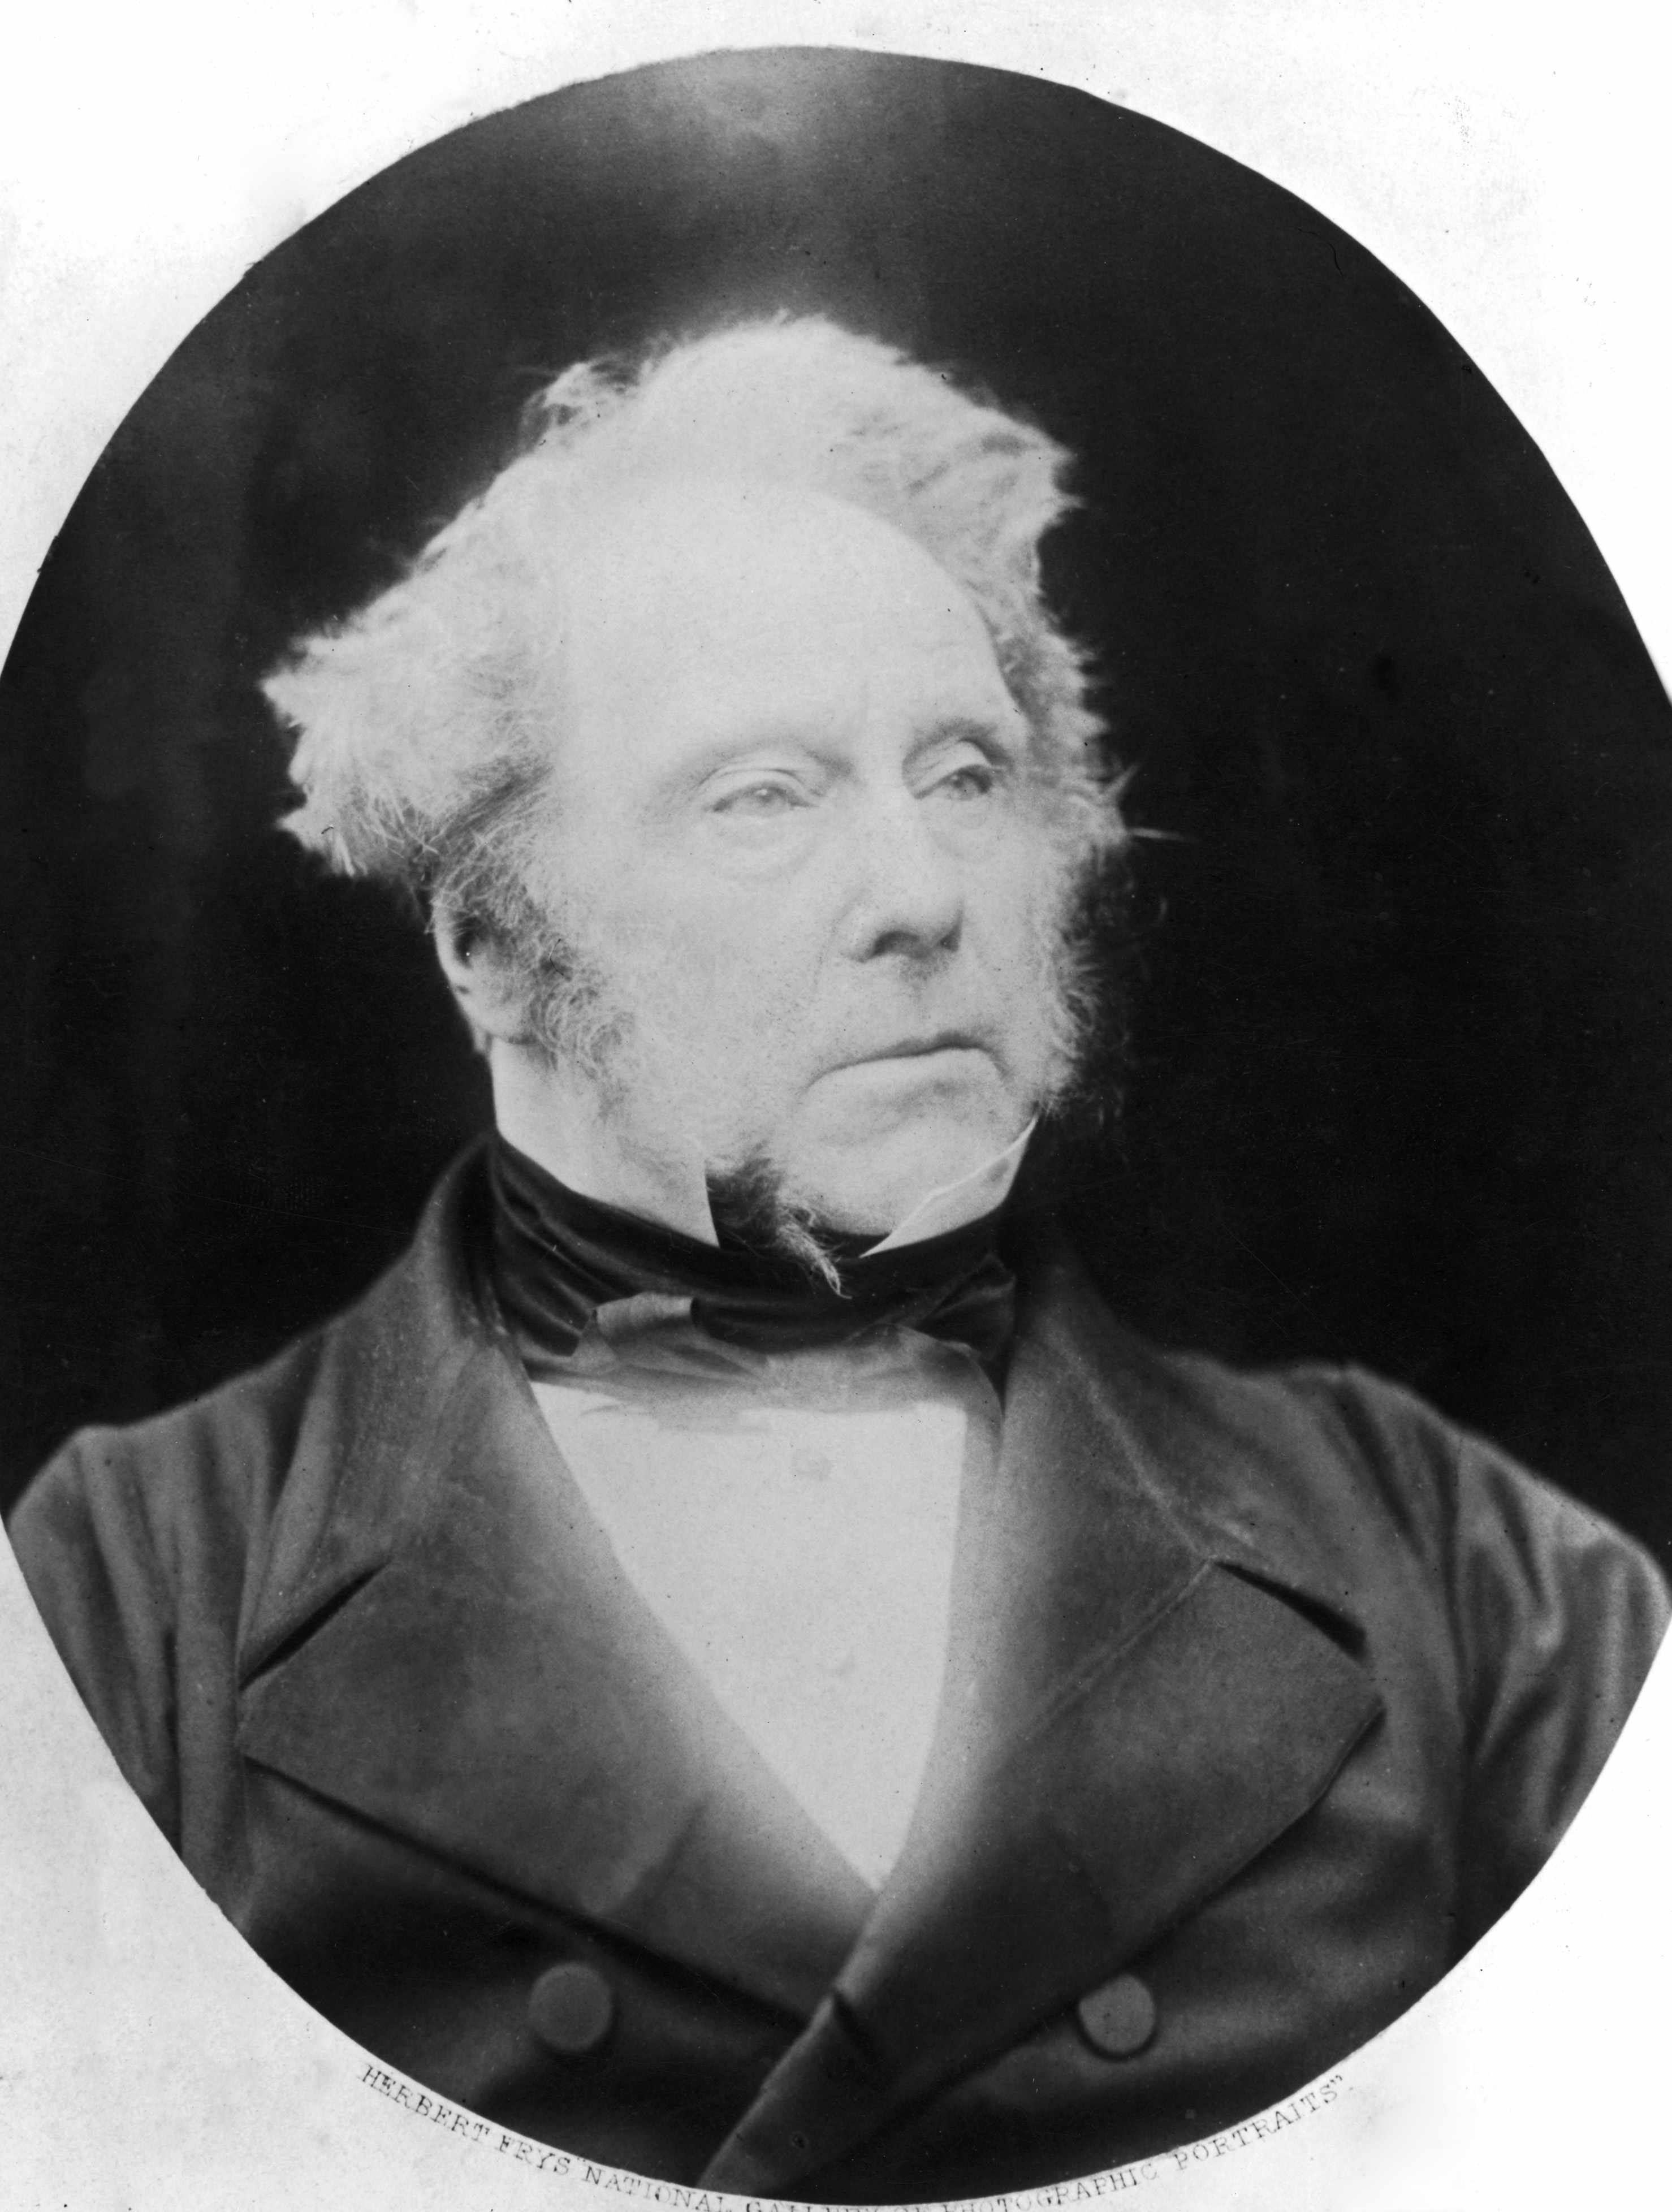 Henry John Temple, 3rd Viscount Palmerston (1784 - 1865), the British Liberal statesman who served almost continually as Prime Minister between 1855 and 1865, pictured circa 1860. (Photo by Herbert Fry/Hulton Archive/Getty Images)